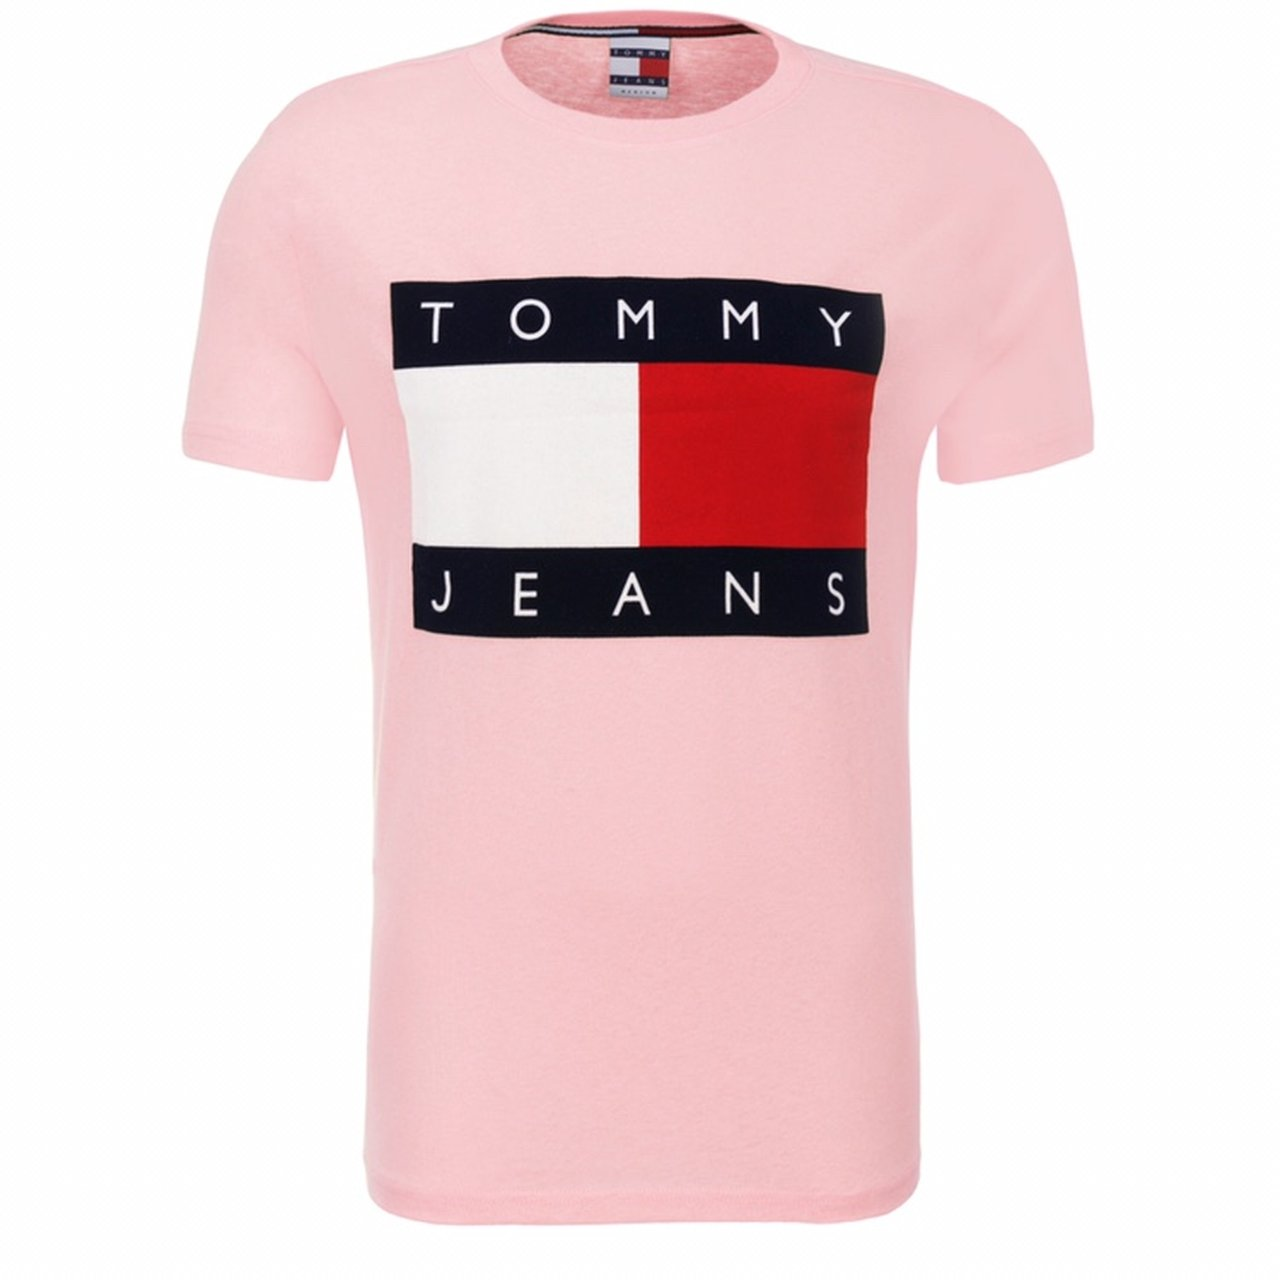 2a524952 Tommy Jeans 90s T Shirt Print Pink